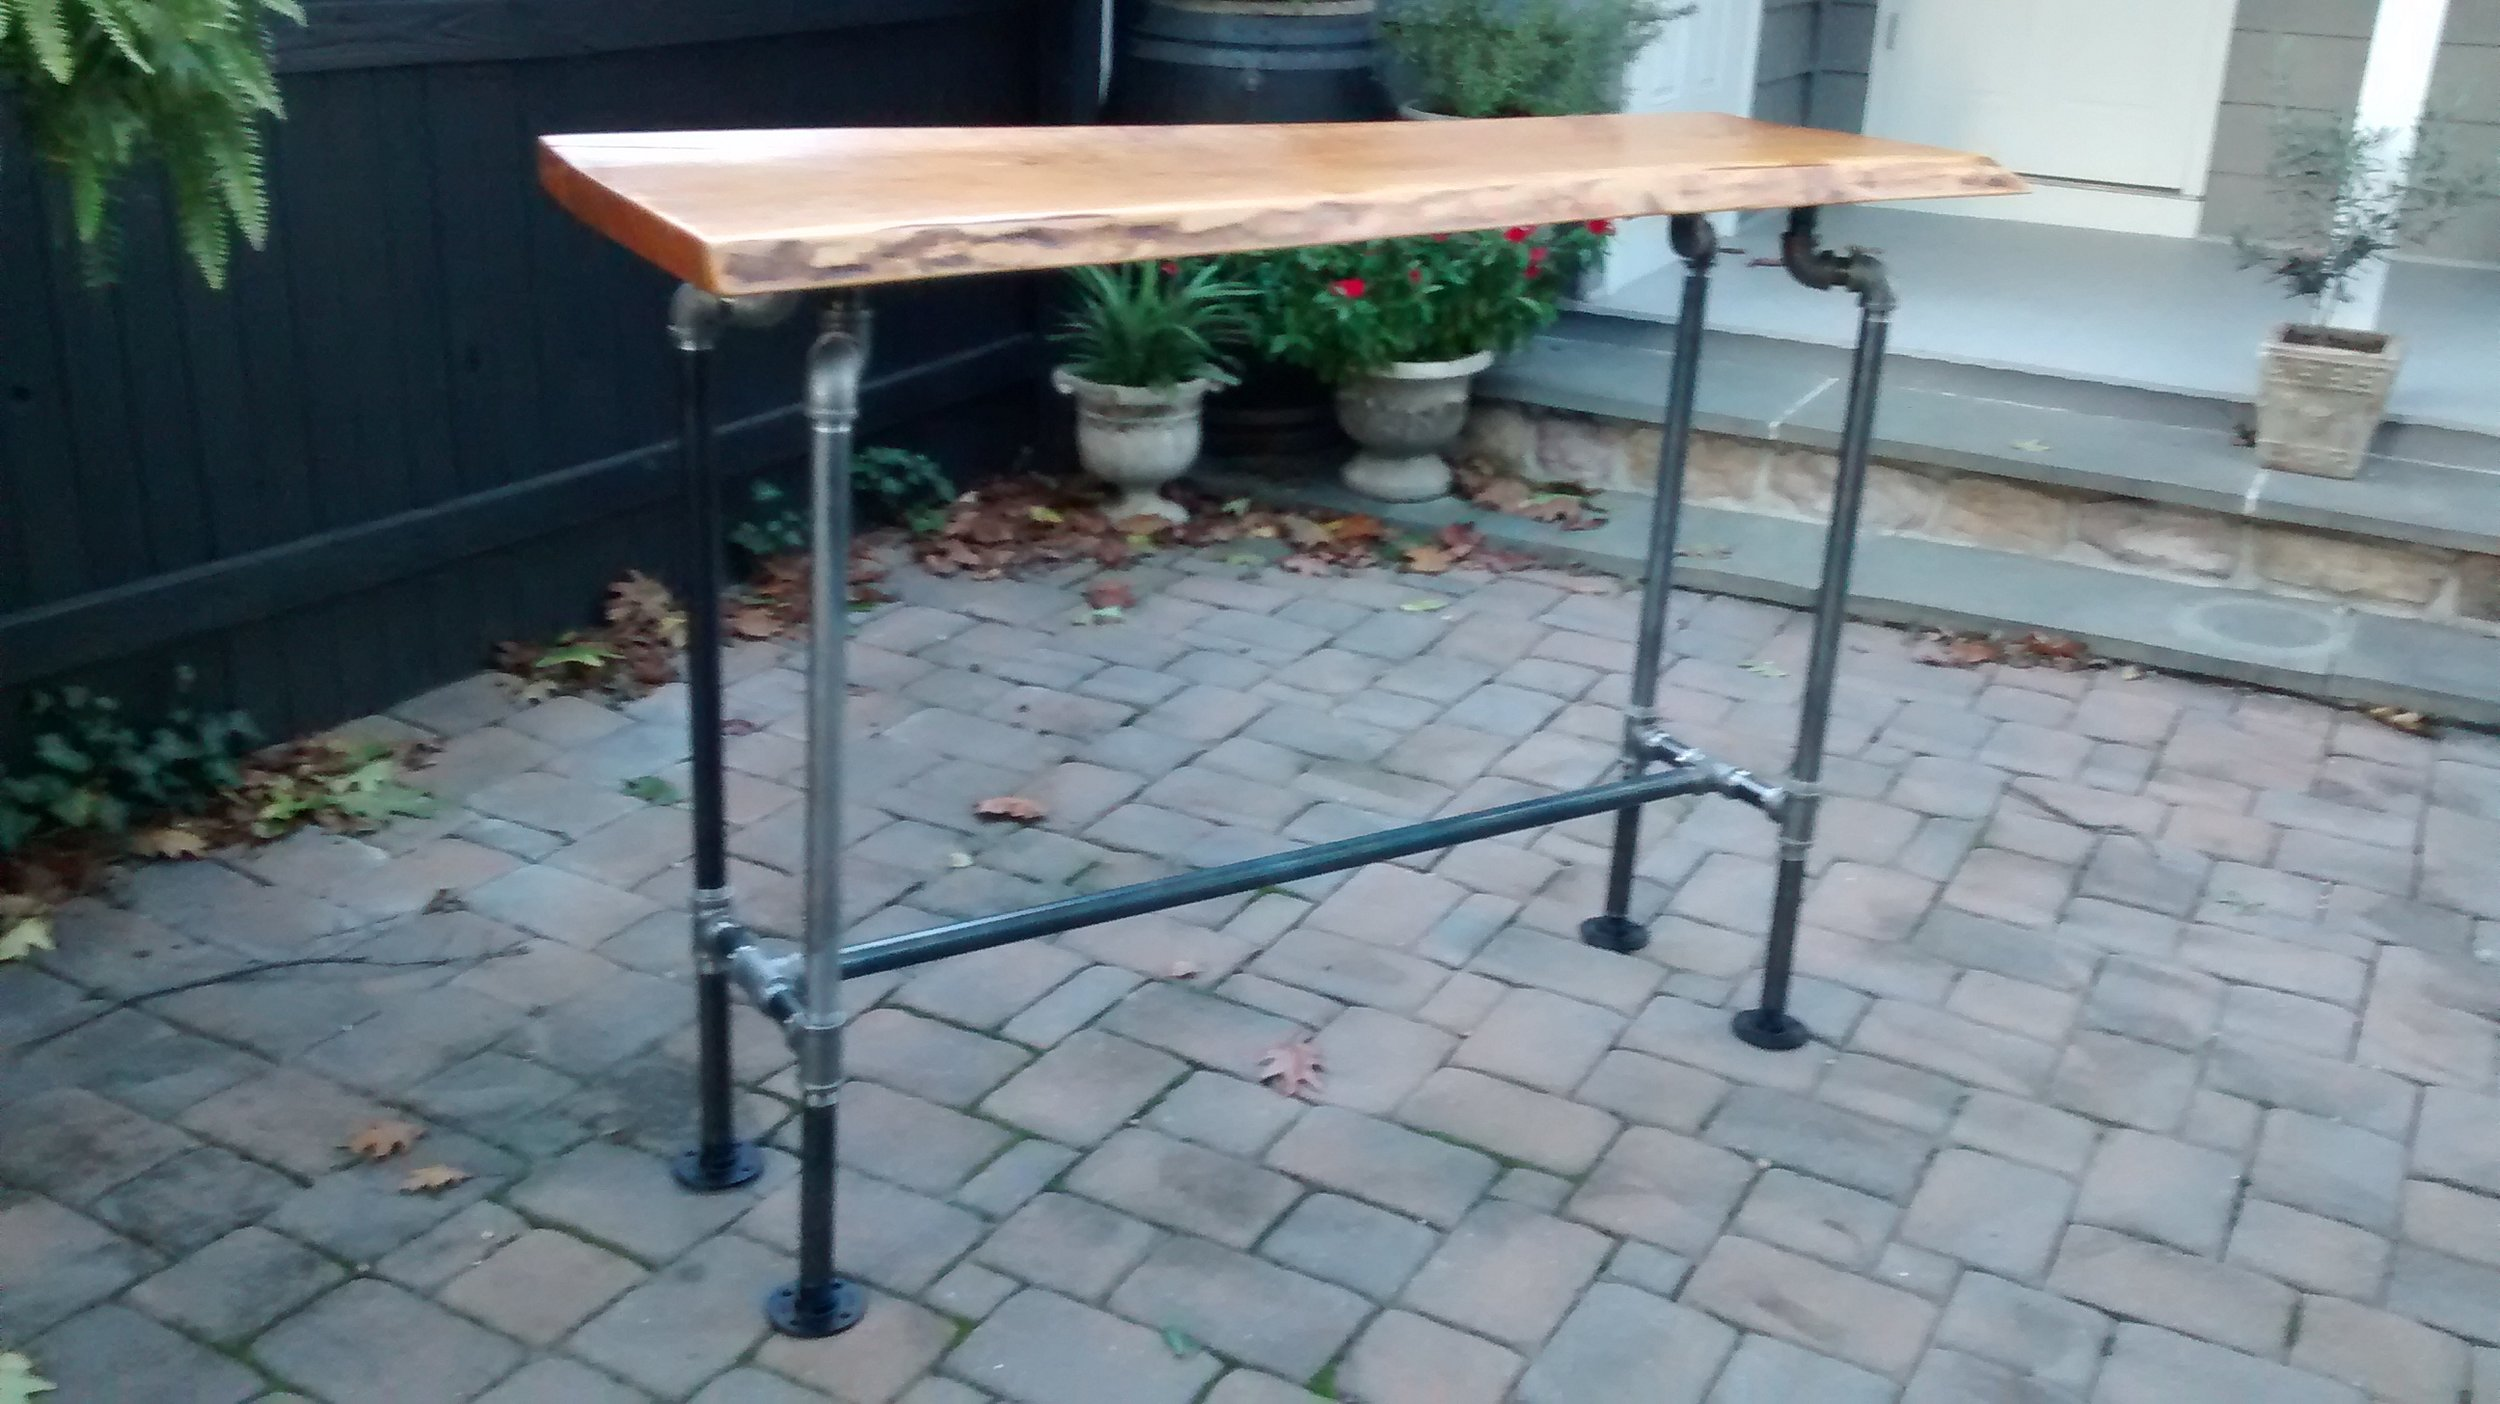 Live-Edge Wood Bar with Black Pipe Legs #2